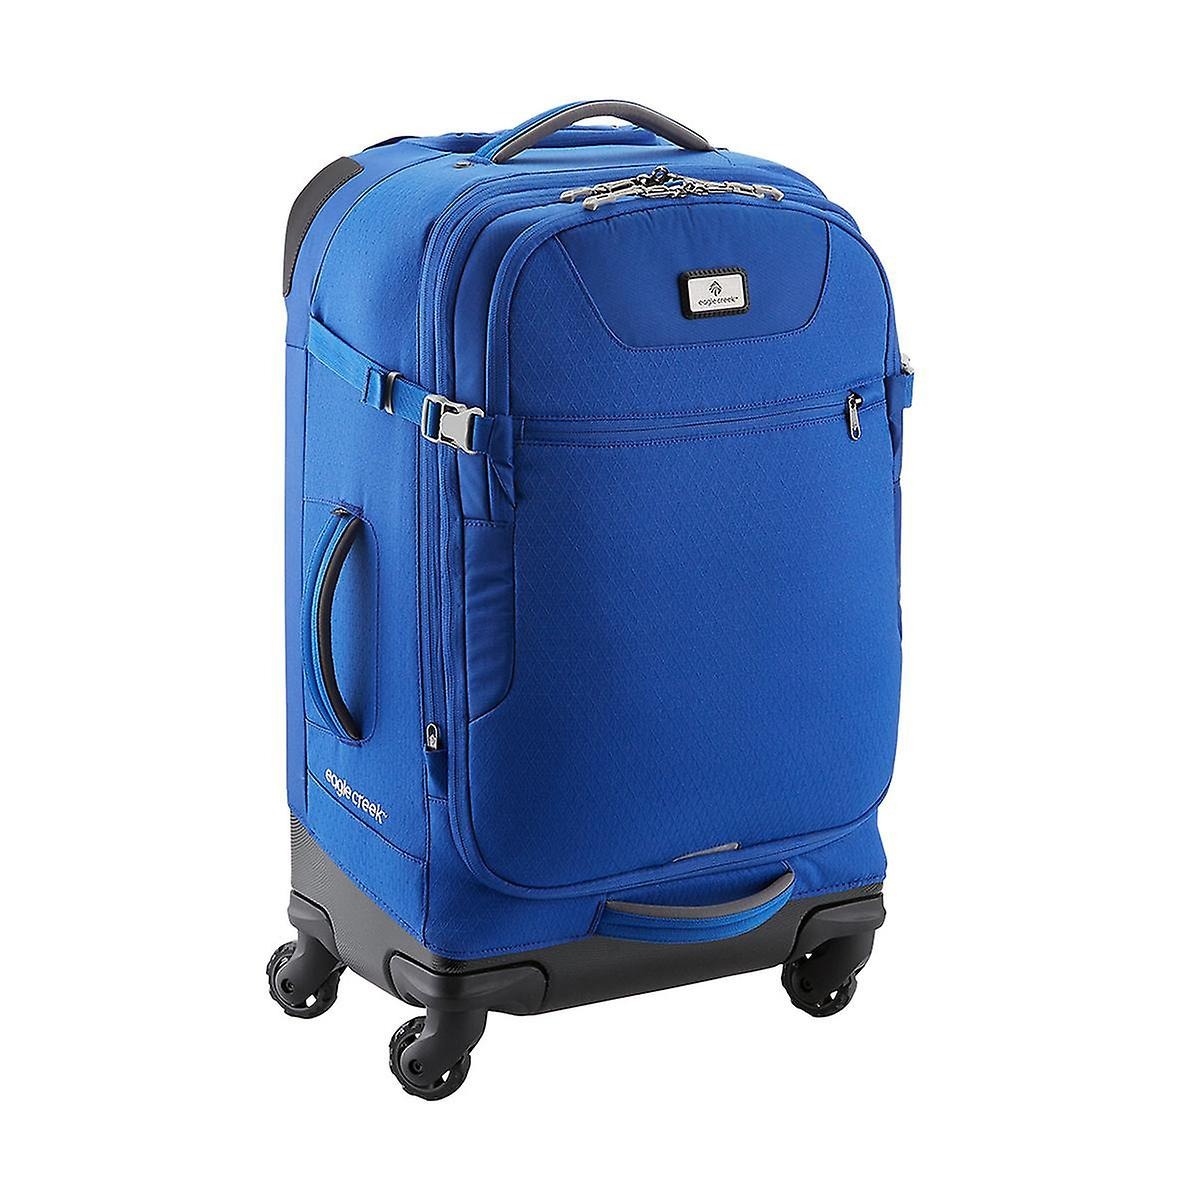 "Eagle Creek Blue 26"" Explore Luggage Solution Starter Kit"